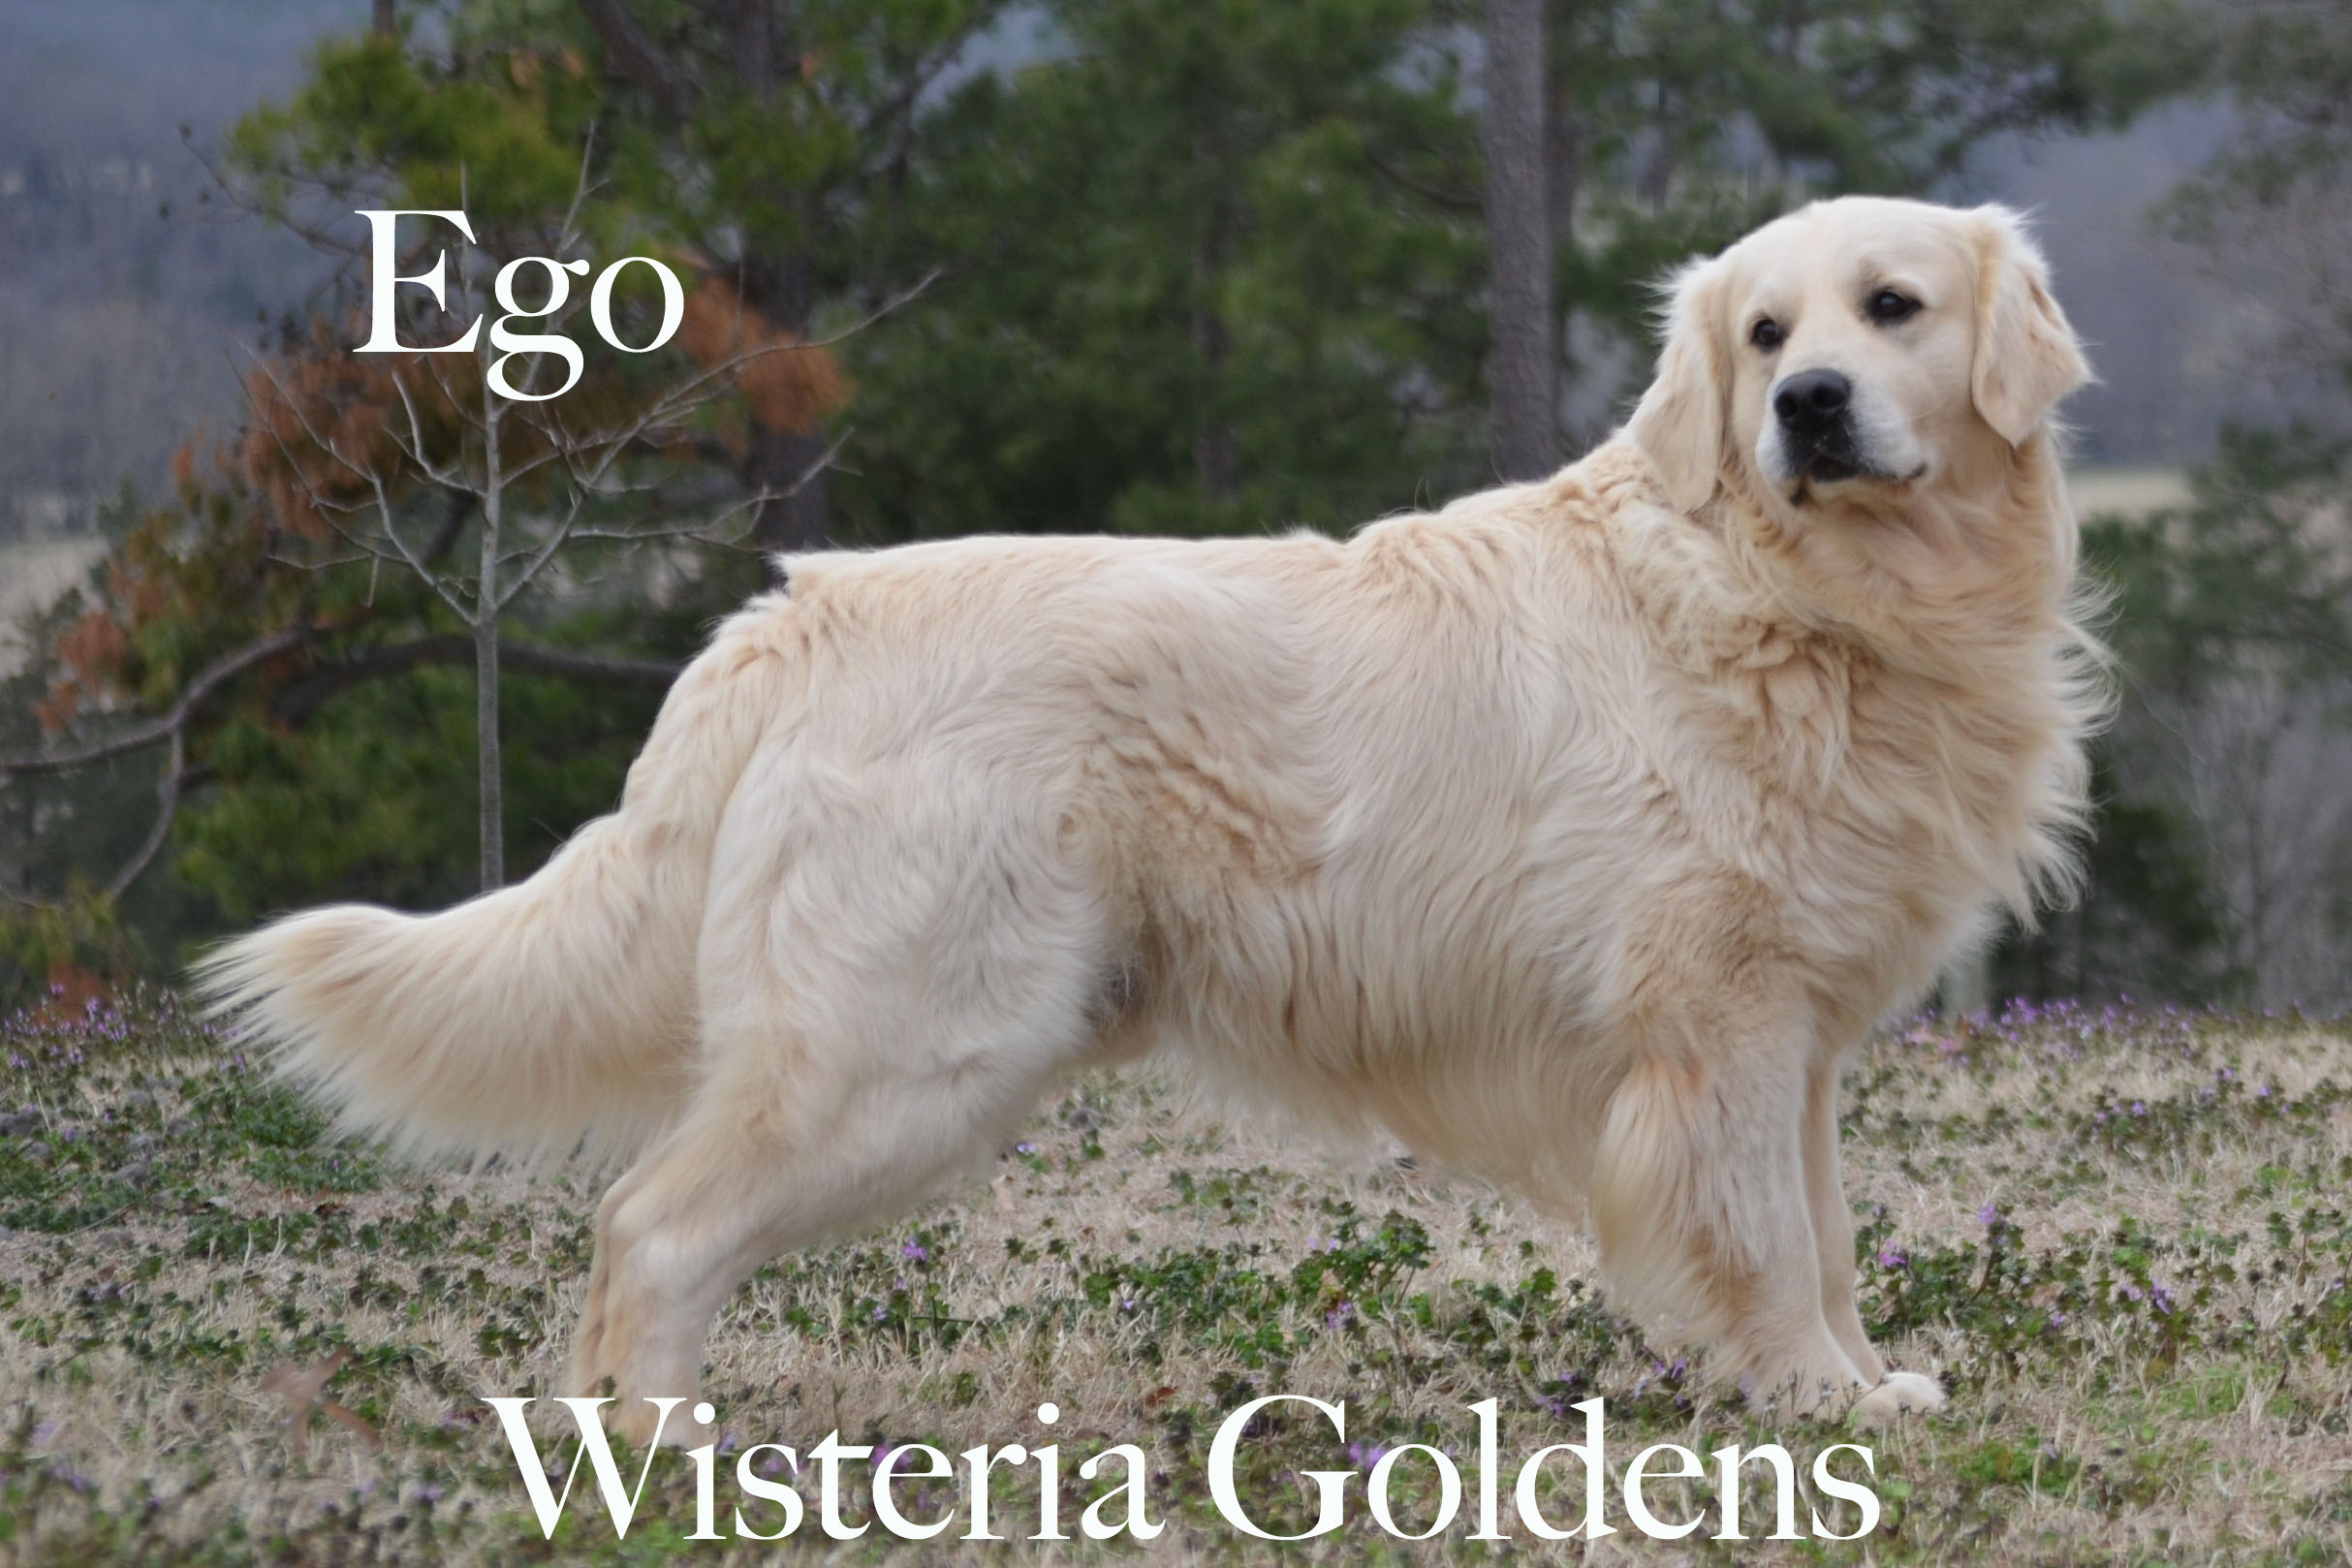 Ego_0114-full-english-creme-golden-retrievers-wisteria-goldens